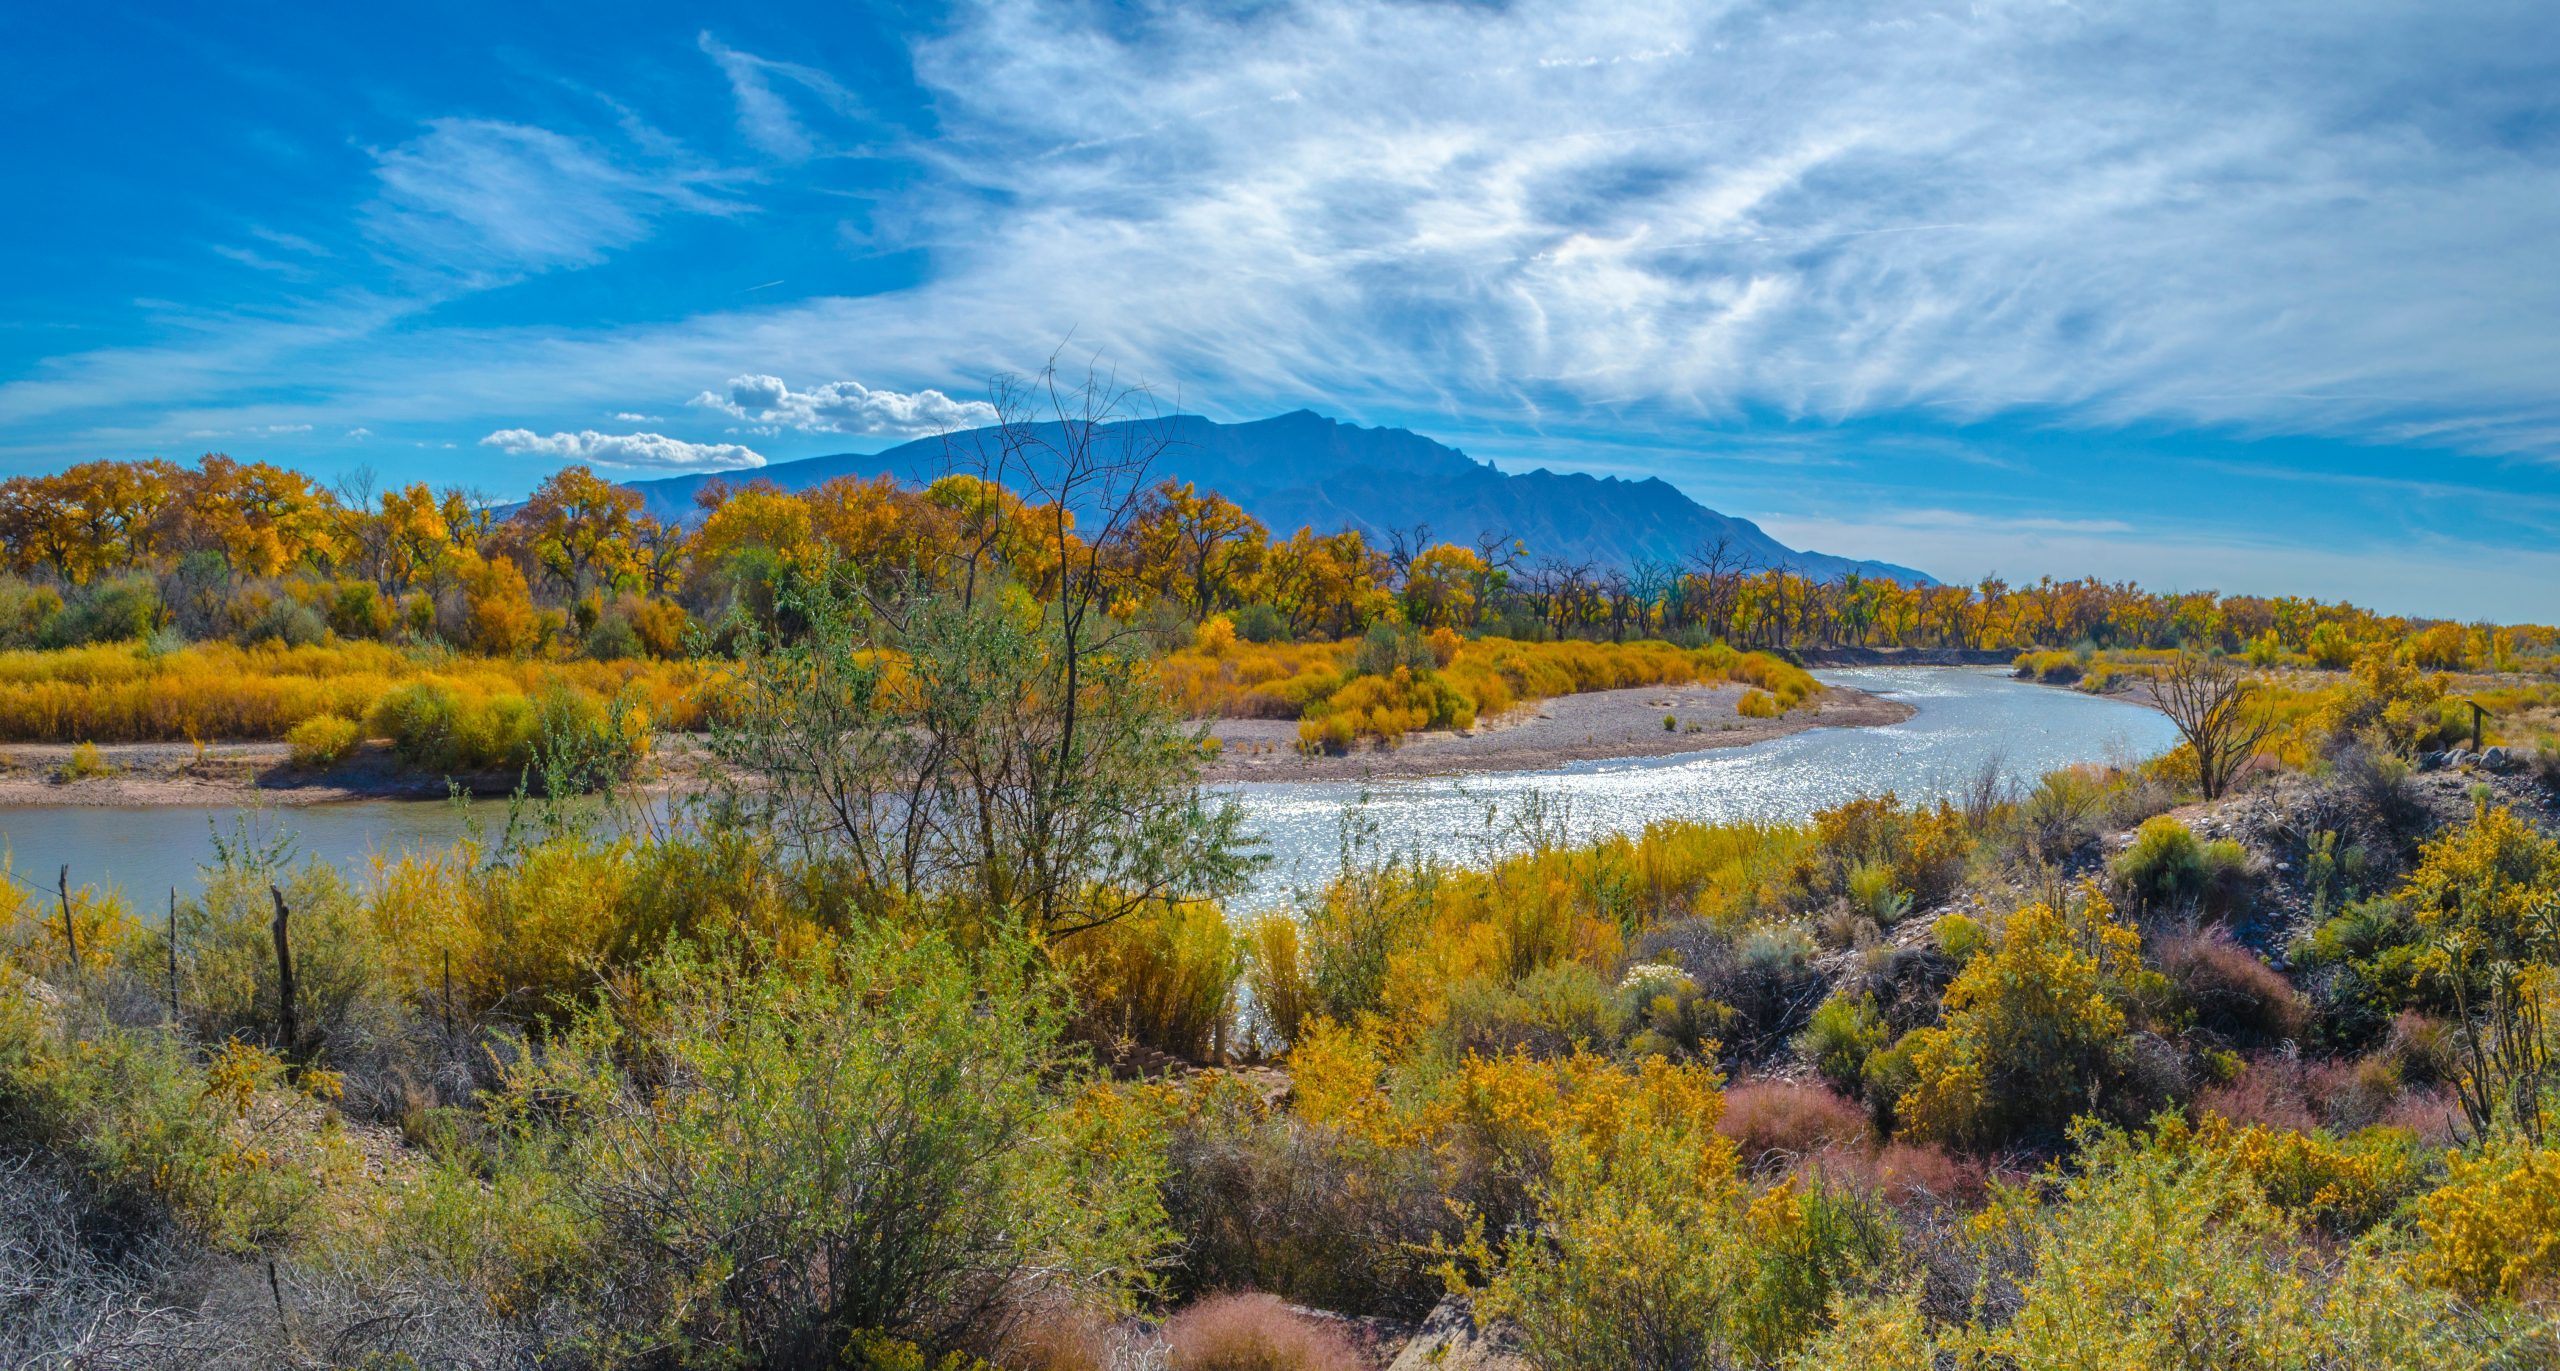 The Río Grande meanders through central New Mexico on this autumn day November 2016.